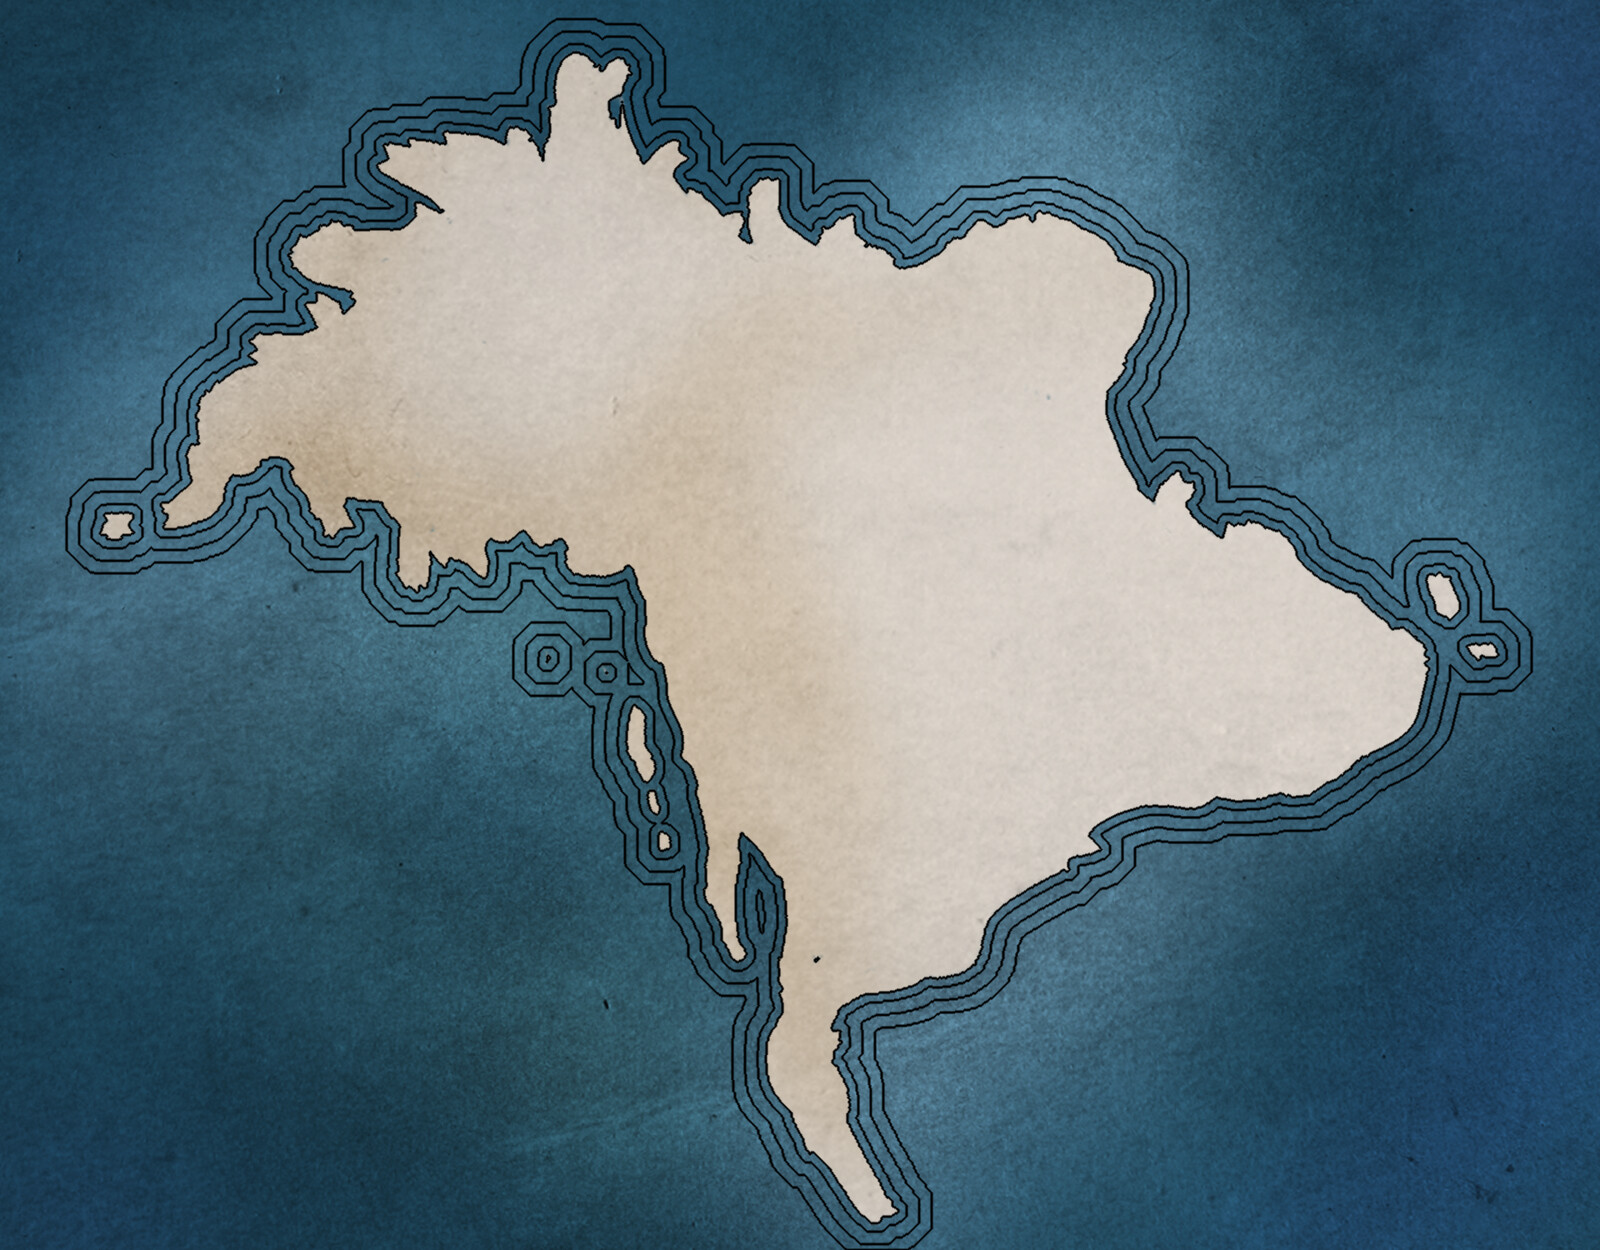 Outline of the continent of Aondal in the style of an old map.